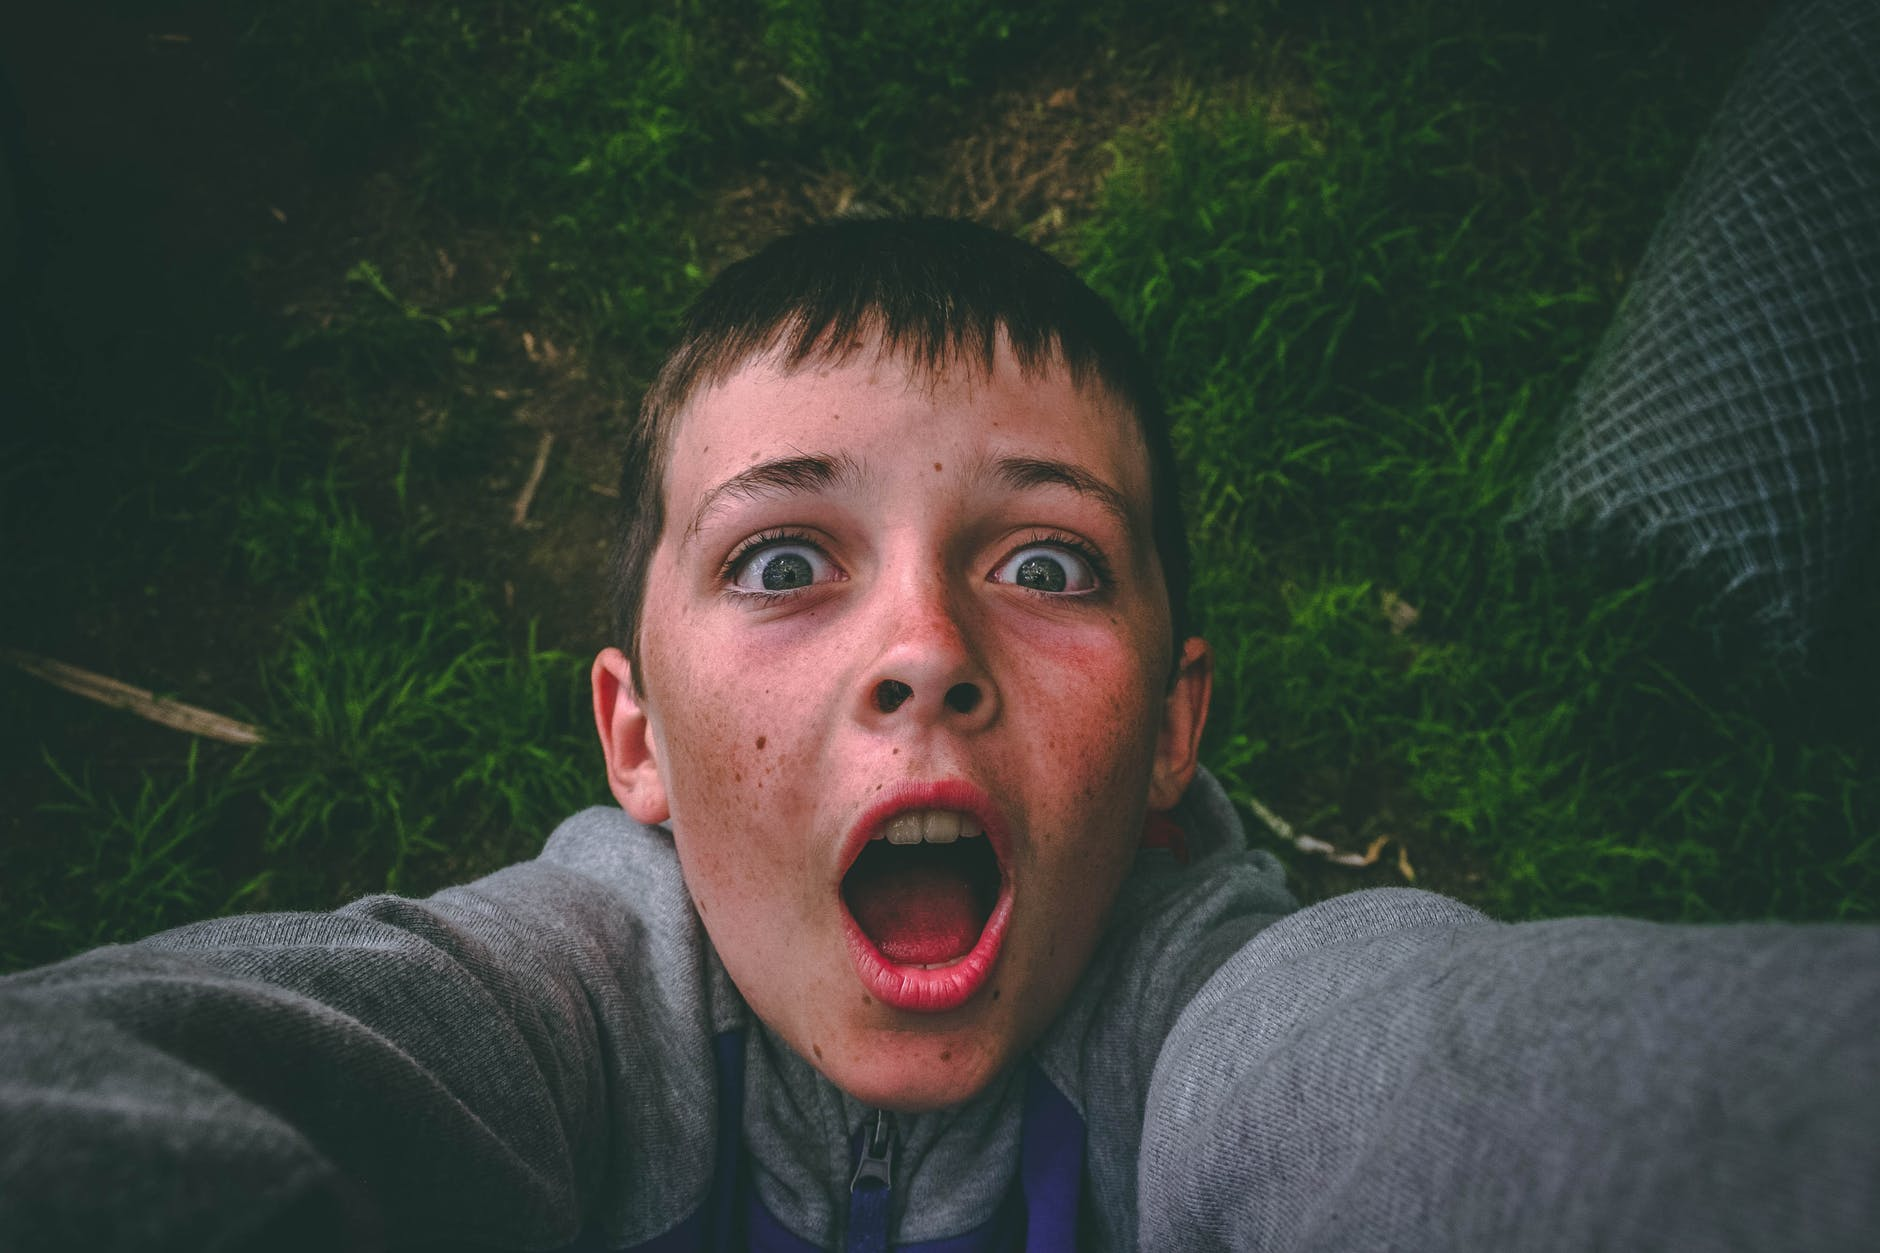 opened mouth black haired boy in gray full zip jacket standing on grass field taking selfie